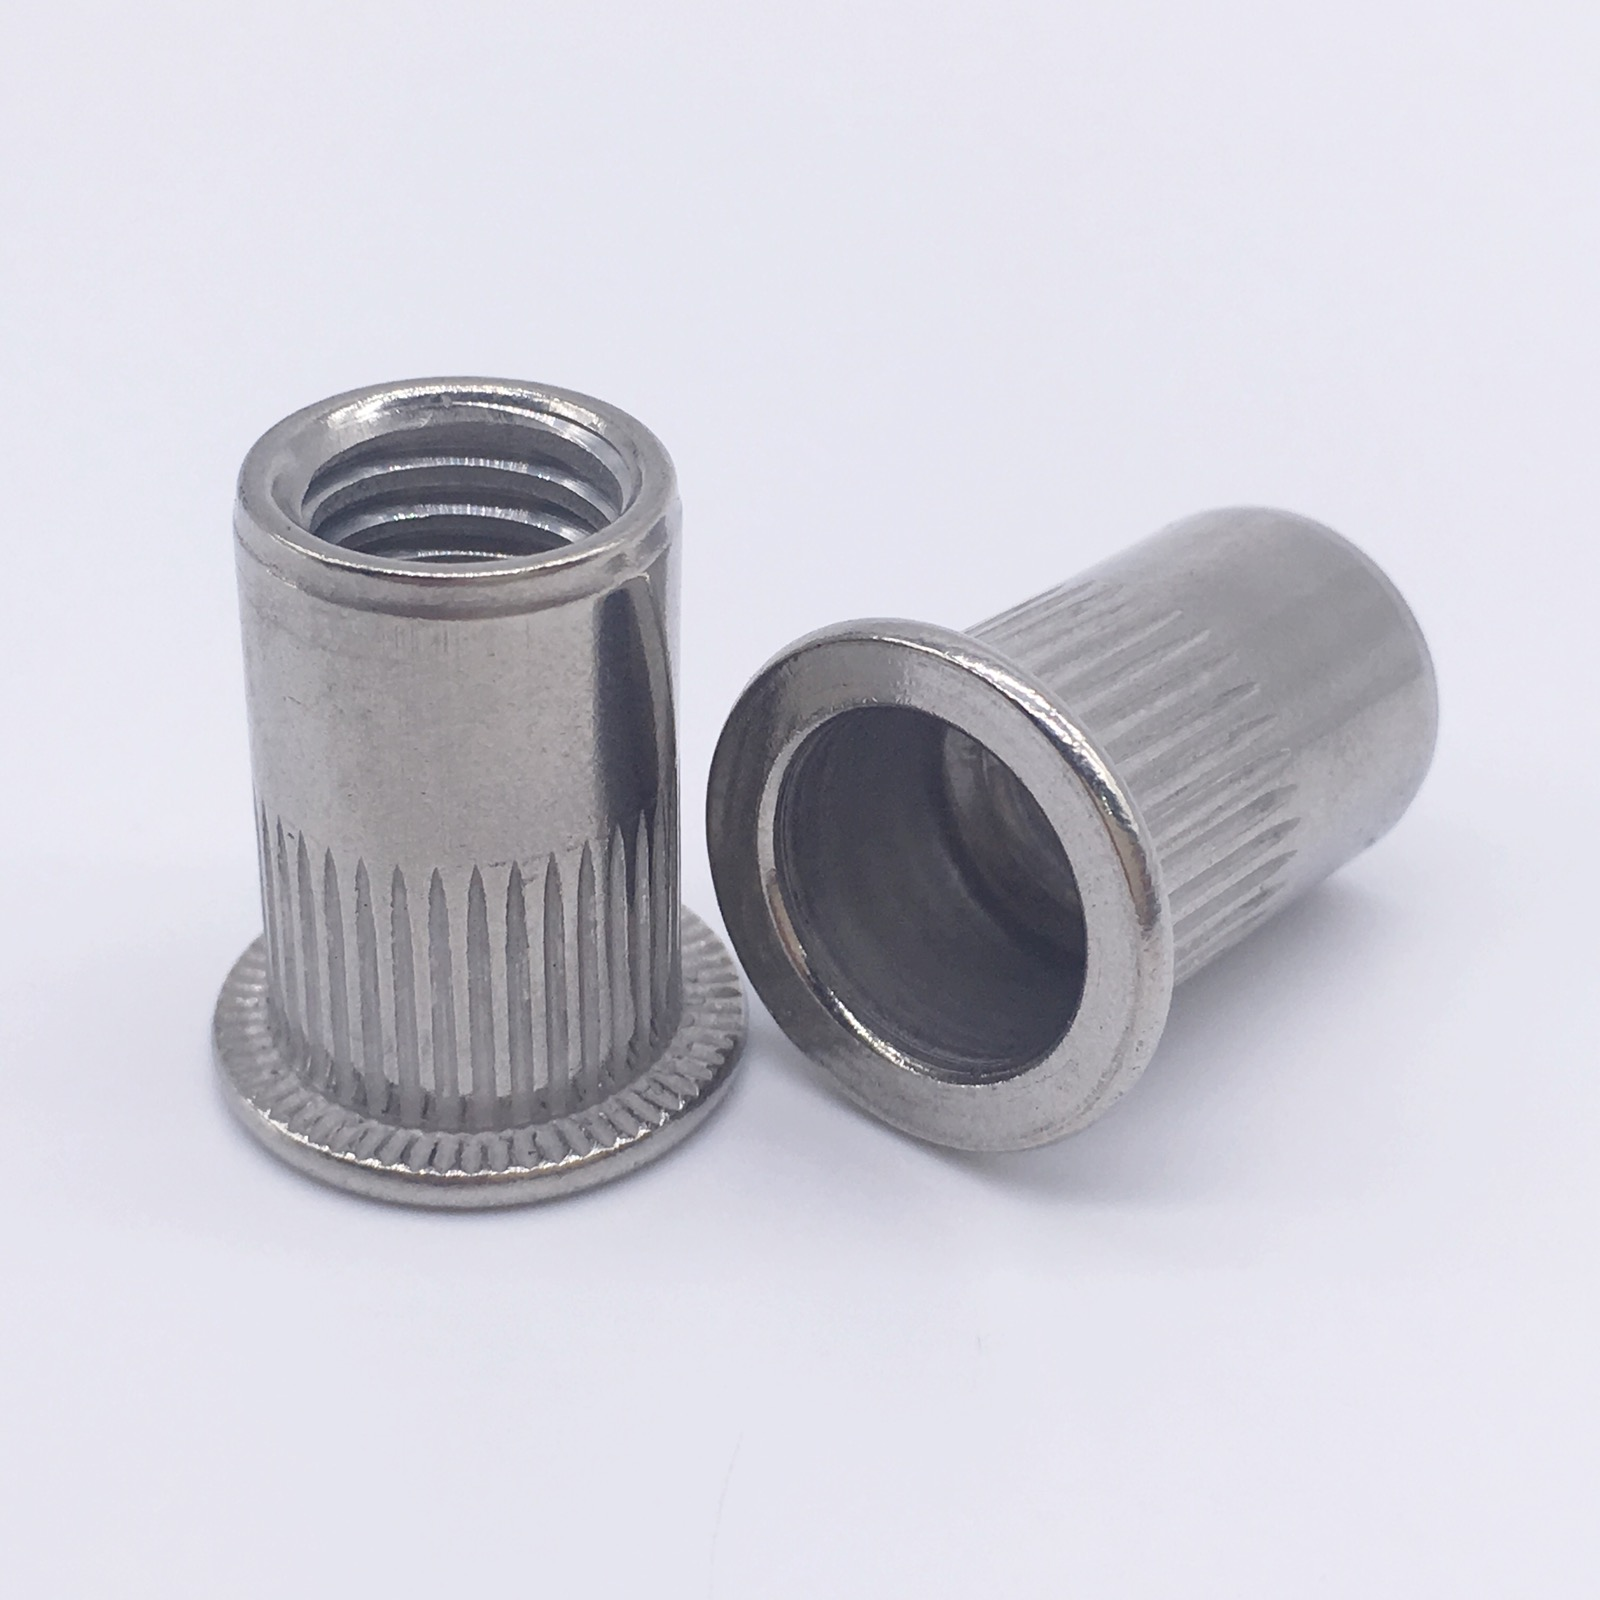 Rivet Nuts Threaded Inserts Blind Nuts Nutserts Rivnut Flat Head Stainless Steel M3 M4 M5 M6 M8 M10 M12 m2 5 pem nuts standoffs blind rivet captive nuts self clinching blind fasteners